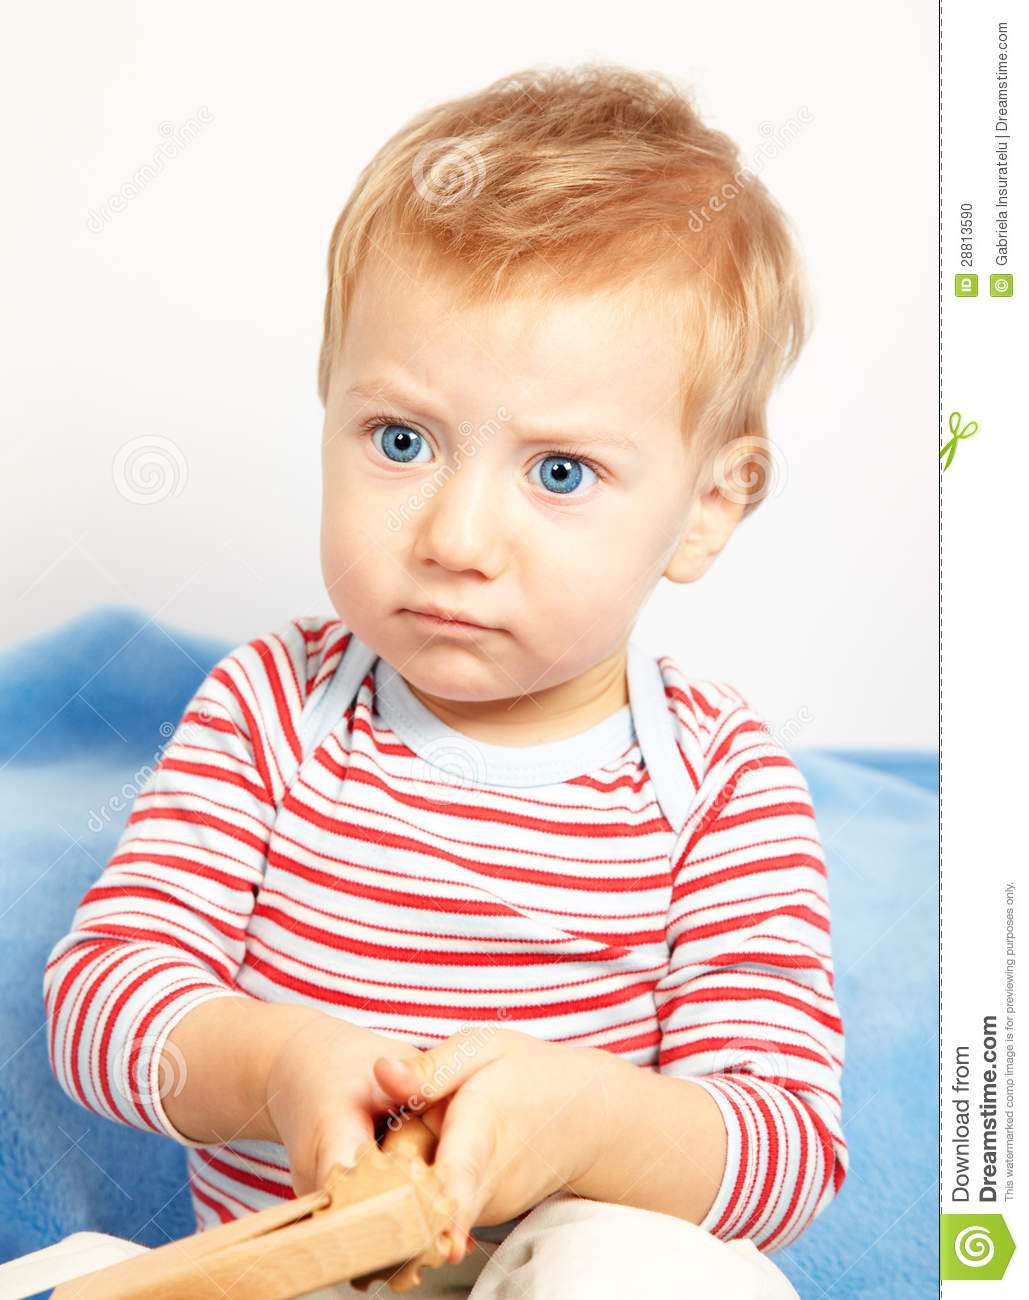 Angry Boy Stock Photo - Image: 28813590